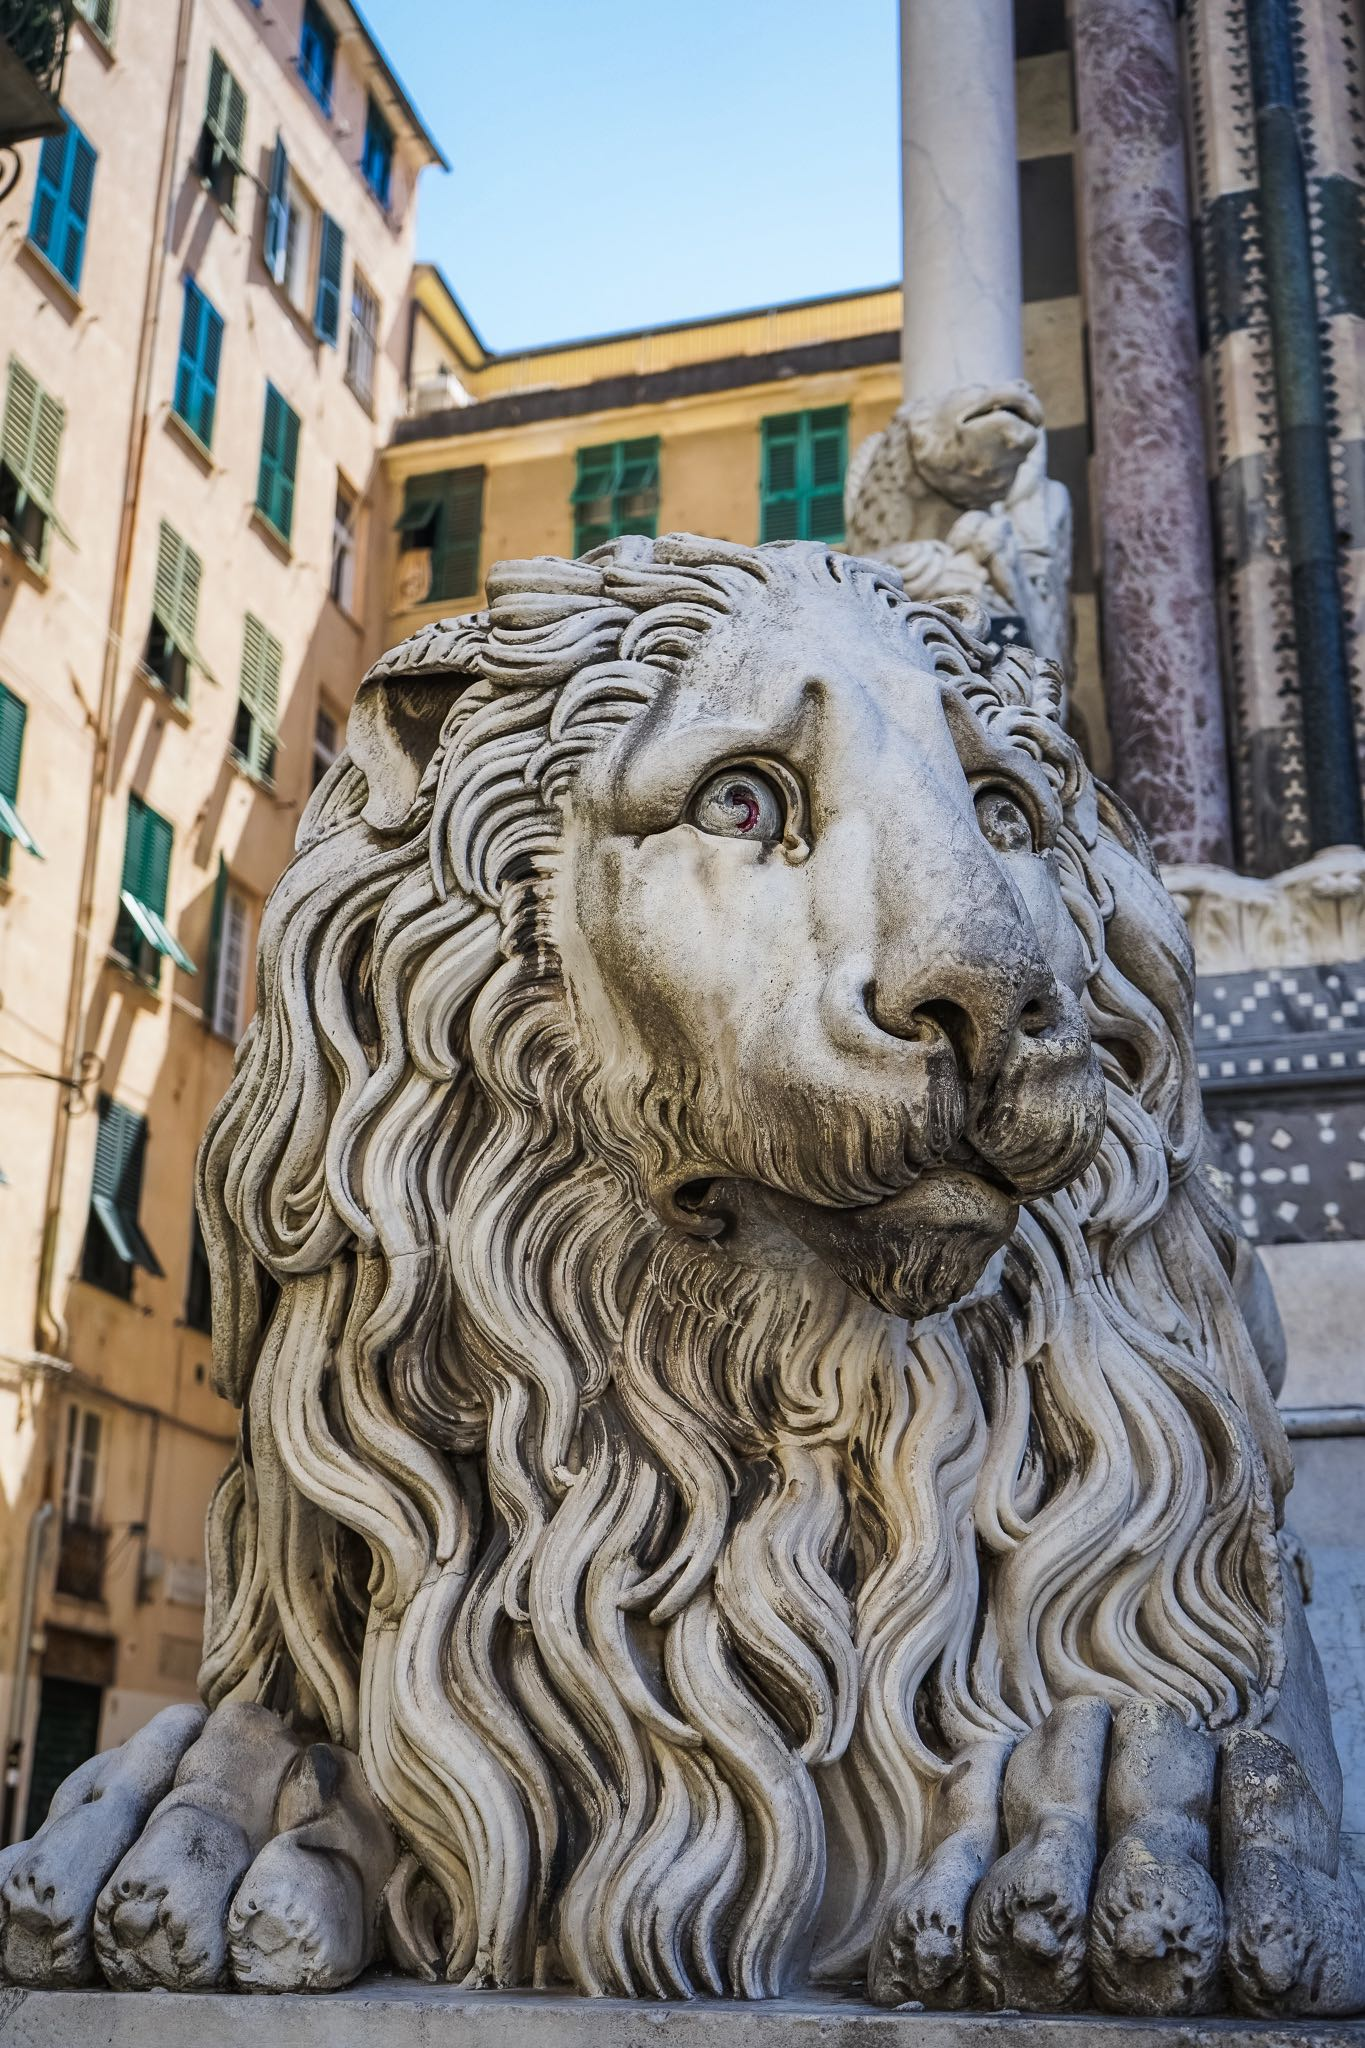 The sad eyes of the lion guarding the Cathedral of San Lorenzo, Genoa's main church